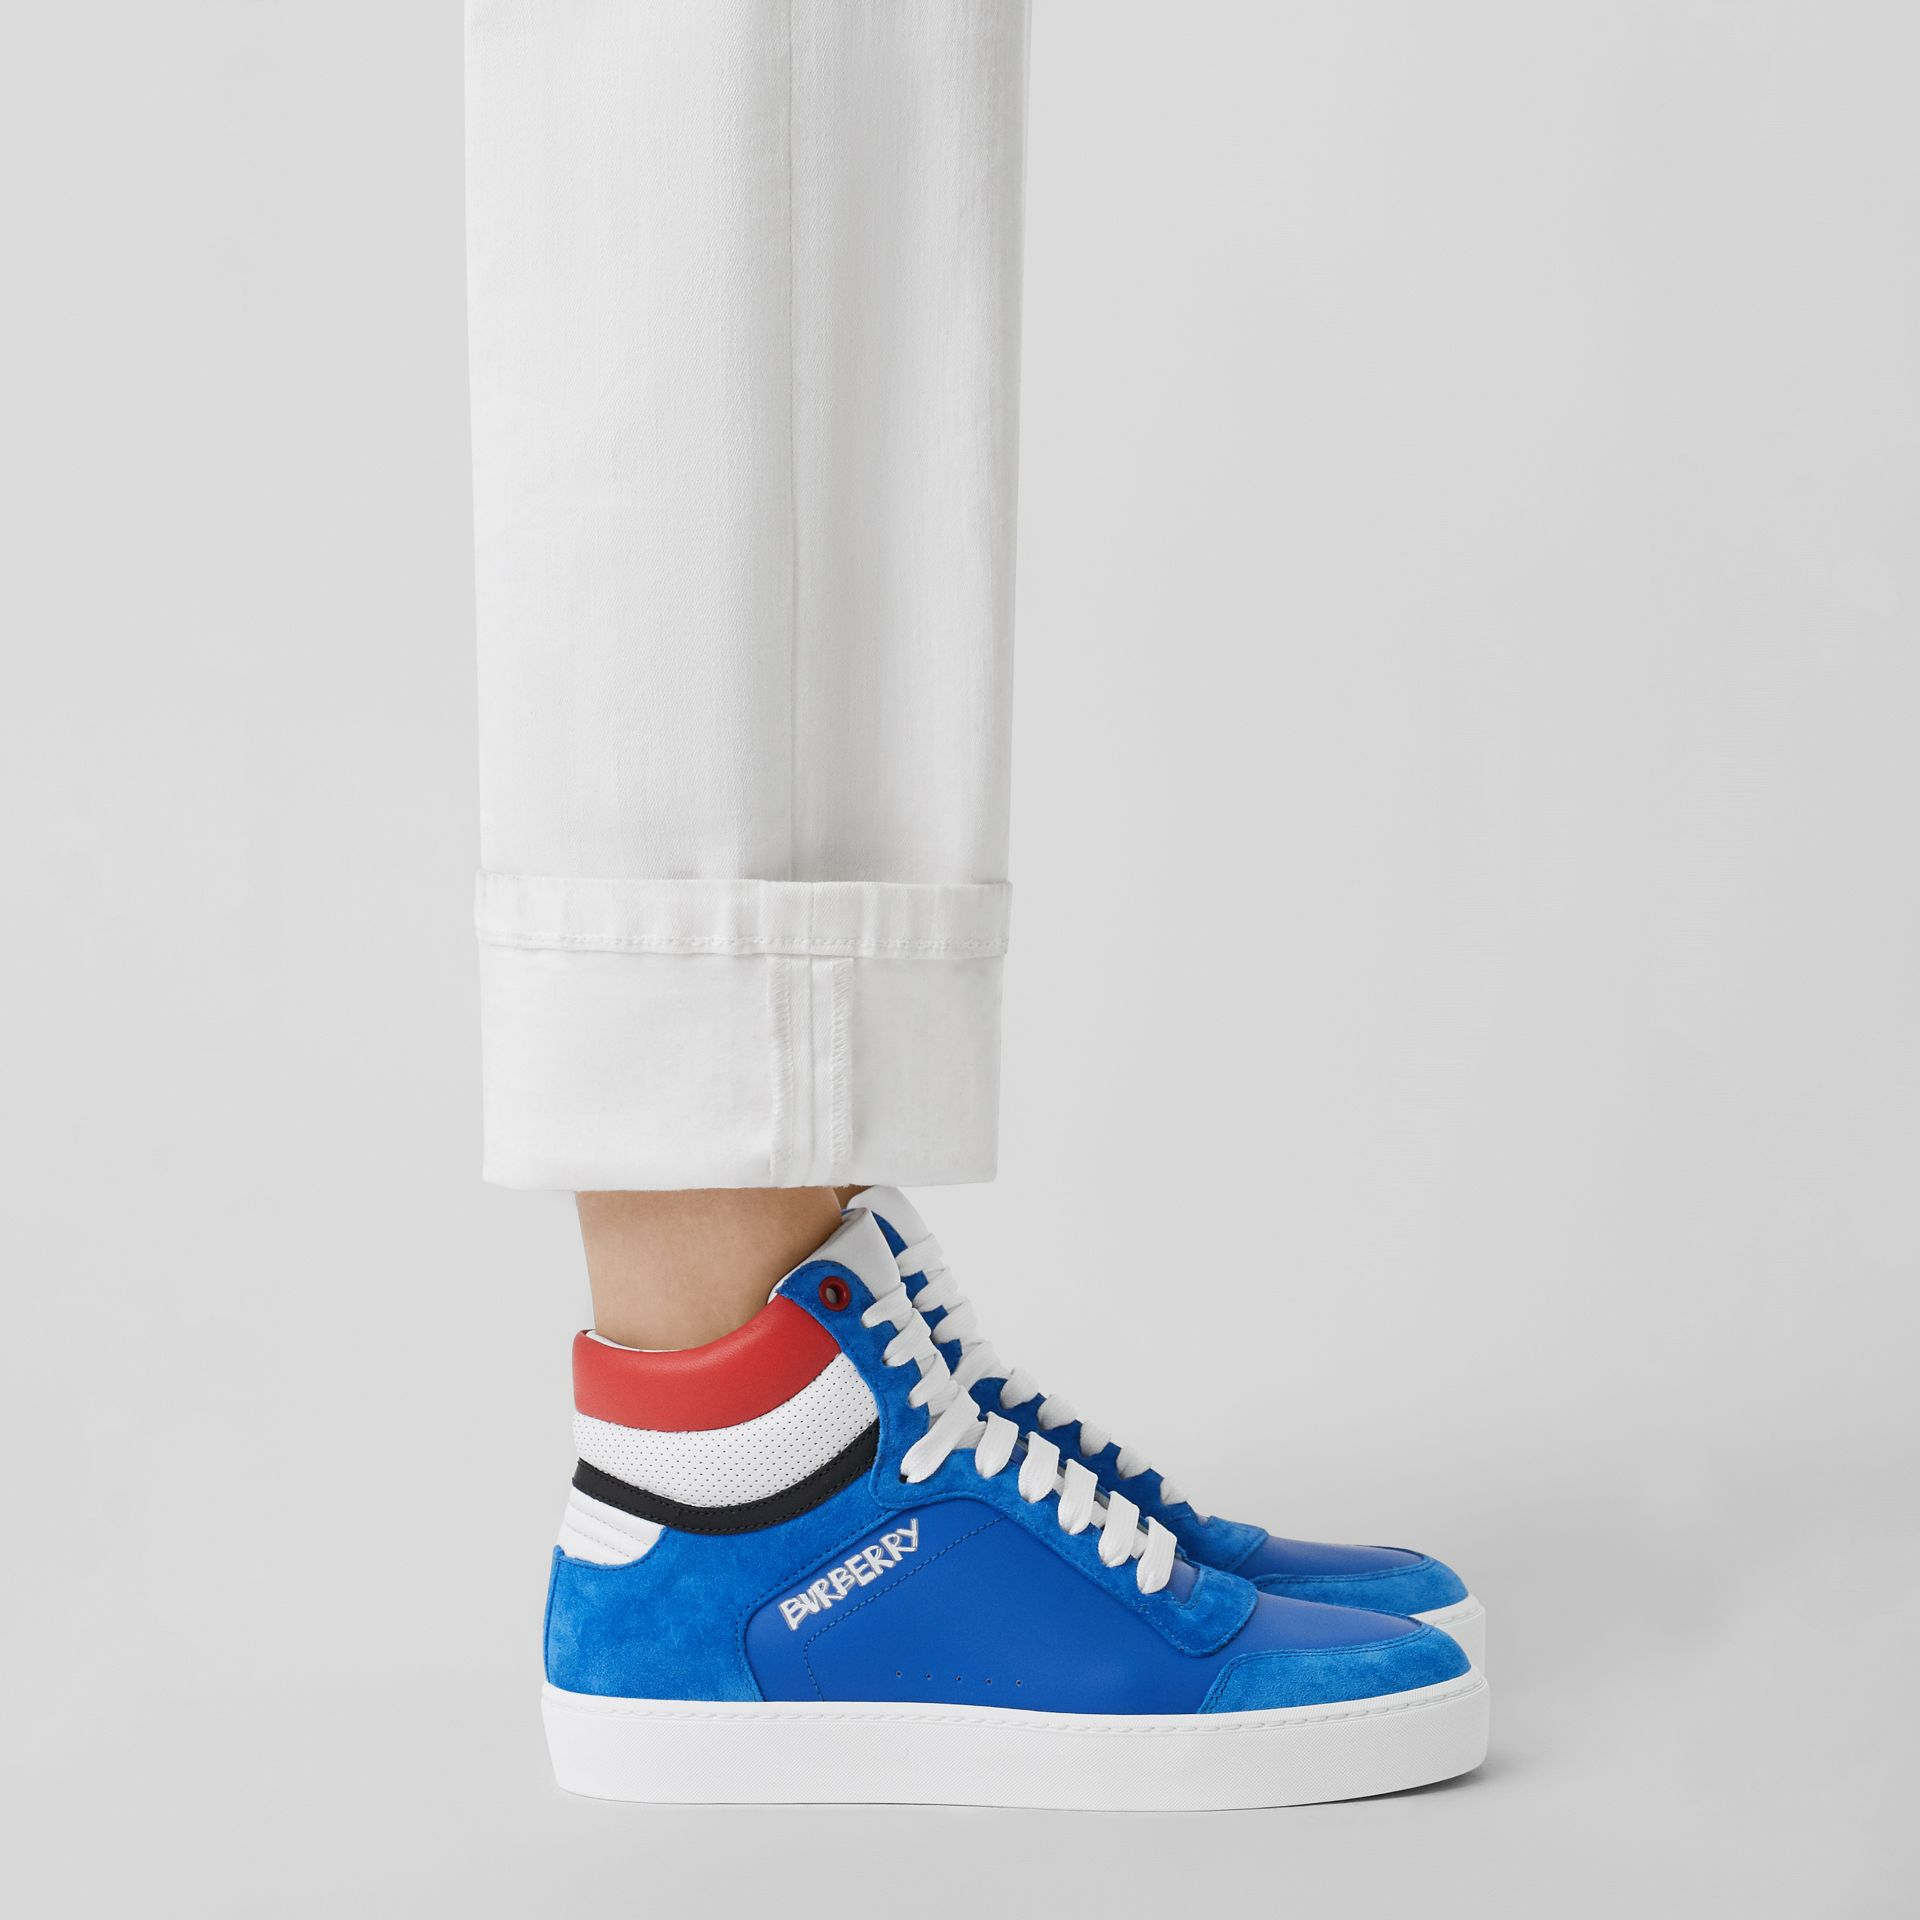 Leather and Suede High-top Sneakers in Bright Sky Blue - Women | Burberry United States - gallery image 2